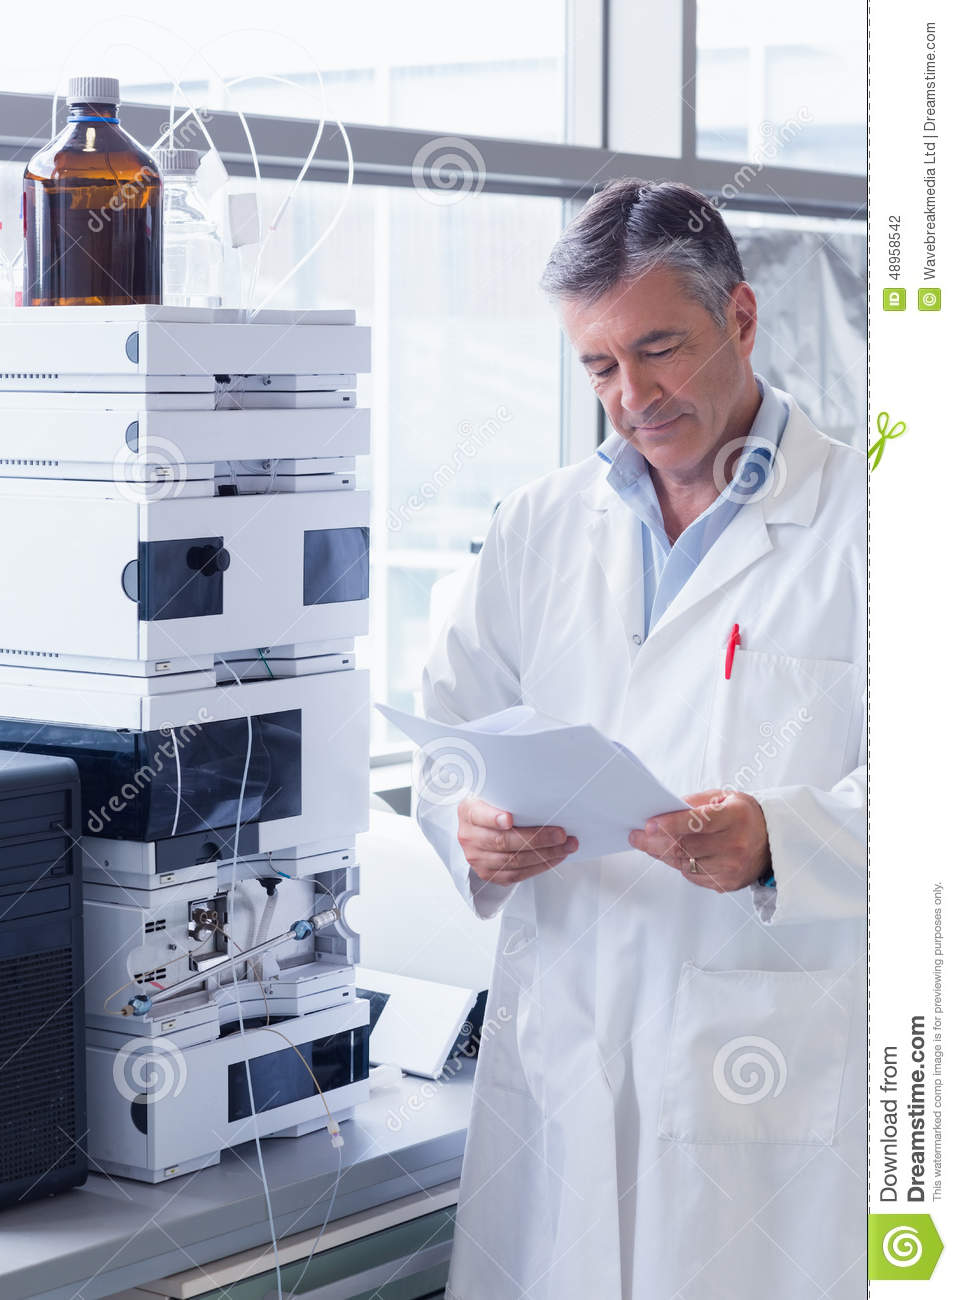 business plan analysis for starch lab A standard business plan consists of a single document divided into several sections including a description of the organization, the market research, competitive analysis, sales strategies, capital and labor requirements, and financial data.